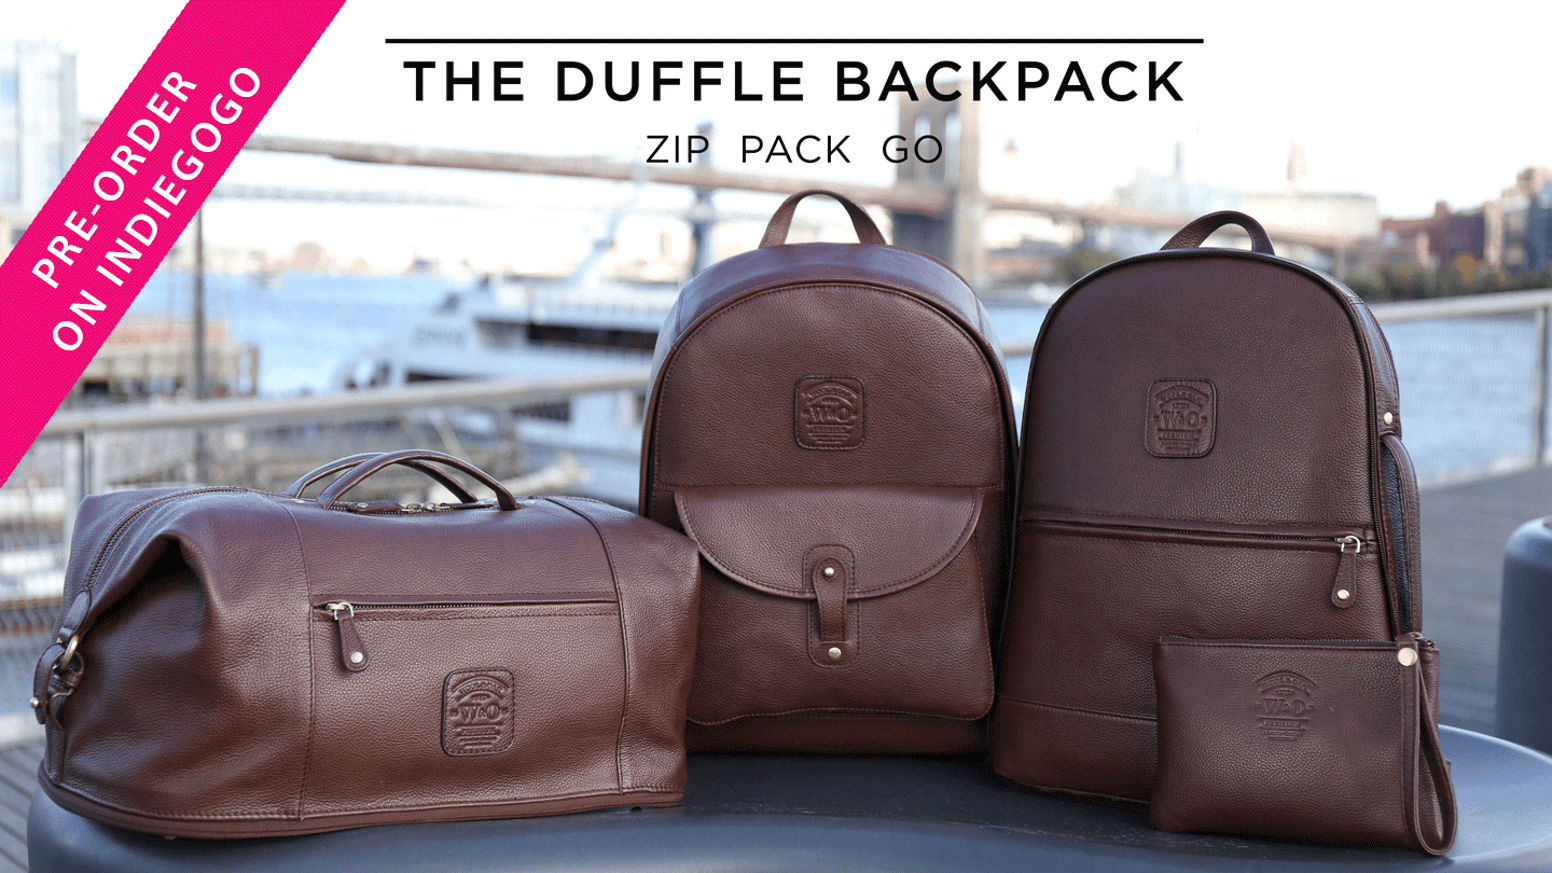 The Leather Duffle Backpack 6-in-1 Set || Zip Pack Go by